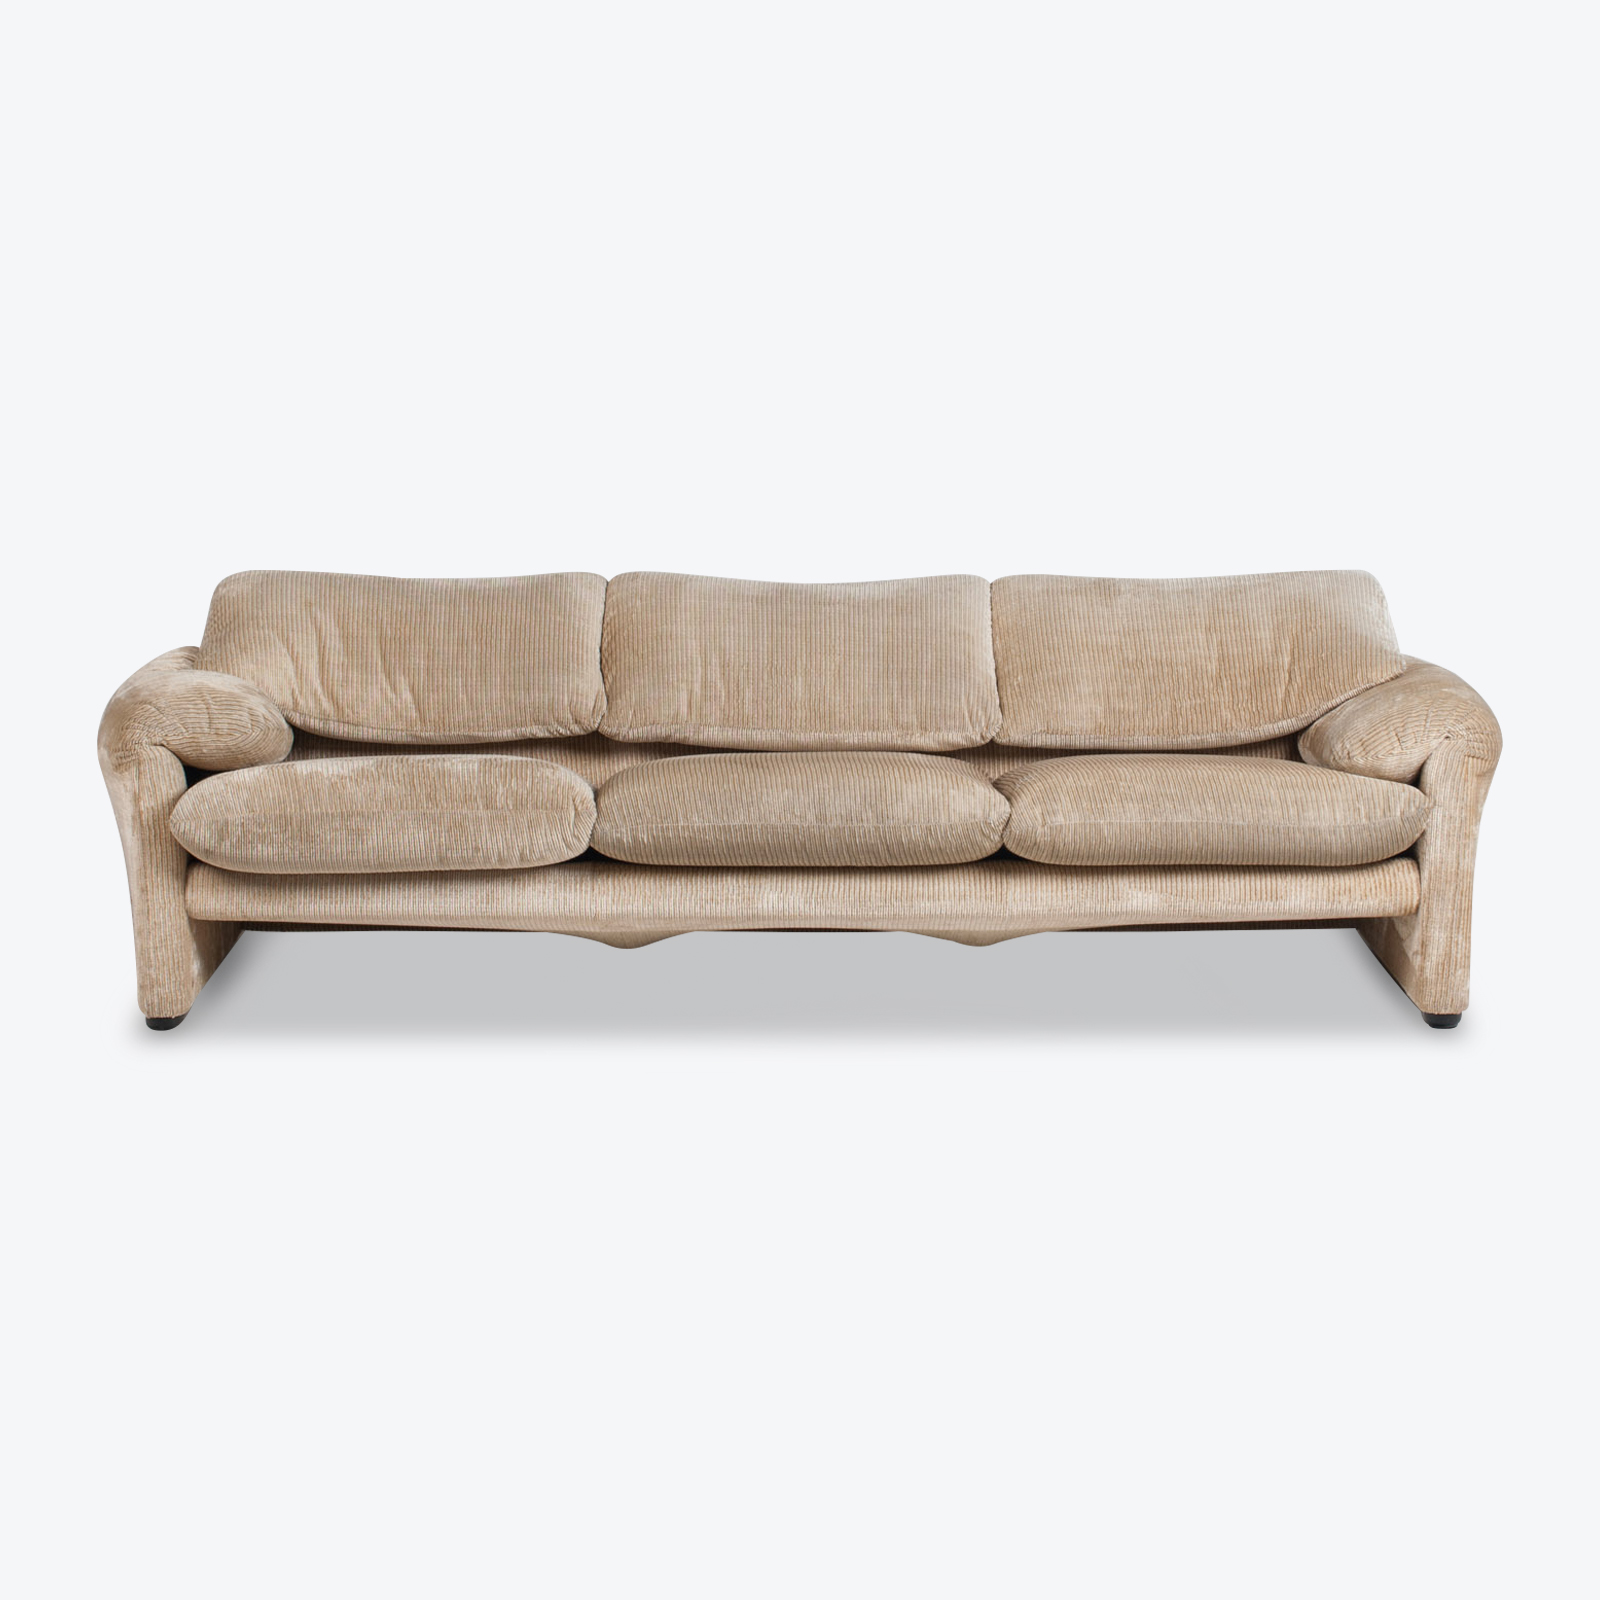 Maralunga 3 Seat Sofa By Vico Magistretti For Cassina In Original Upholstery 1970s Italy 01